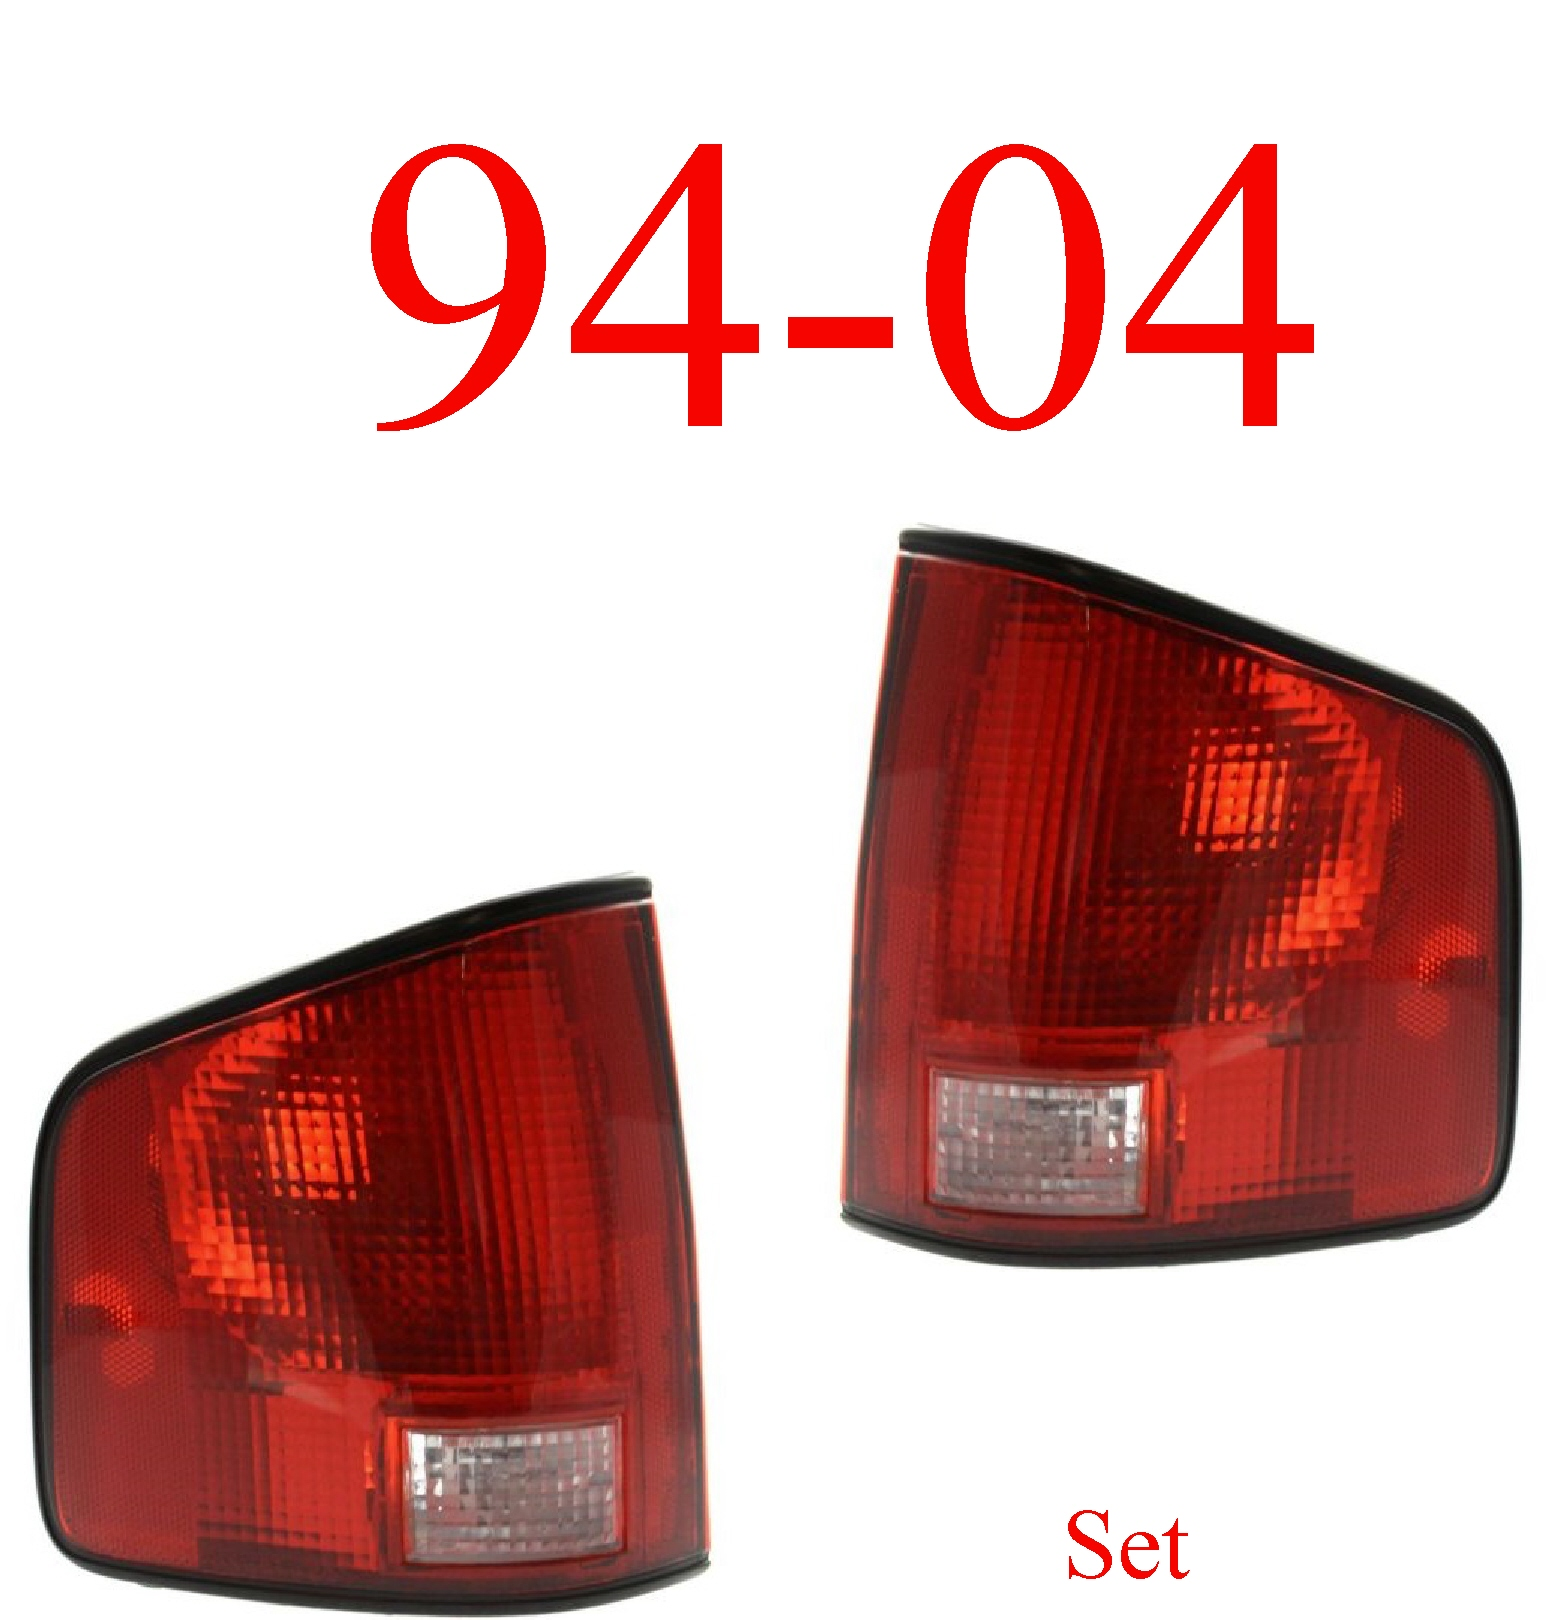 94-04 S10 Tail Light Set Assembly